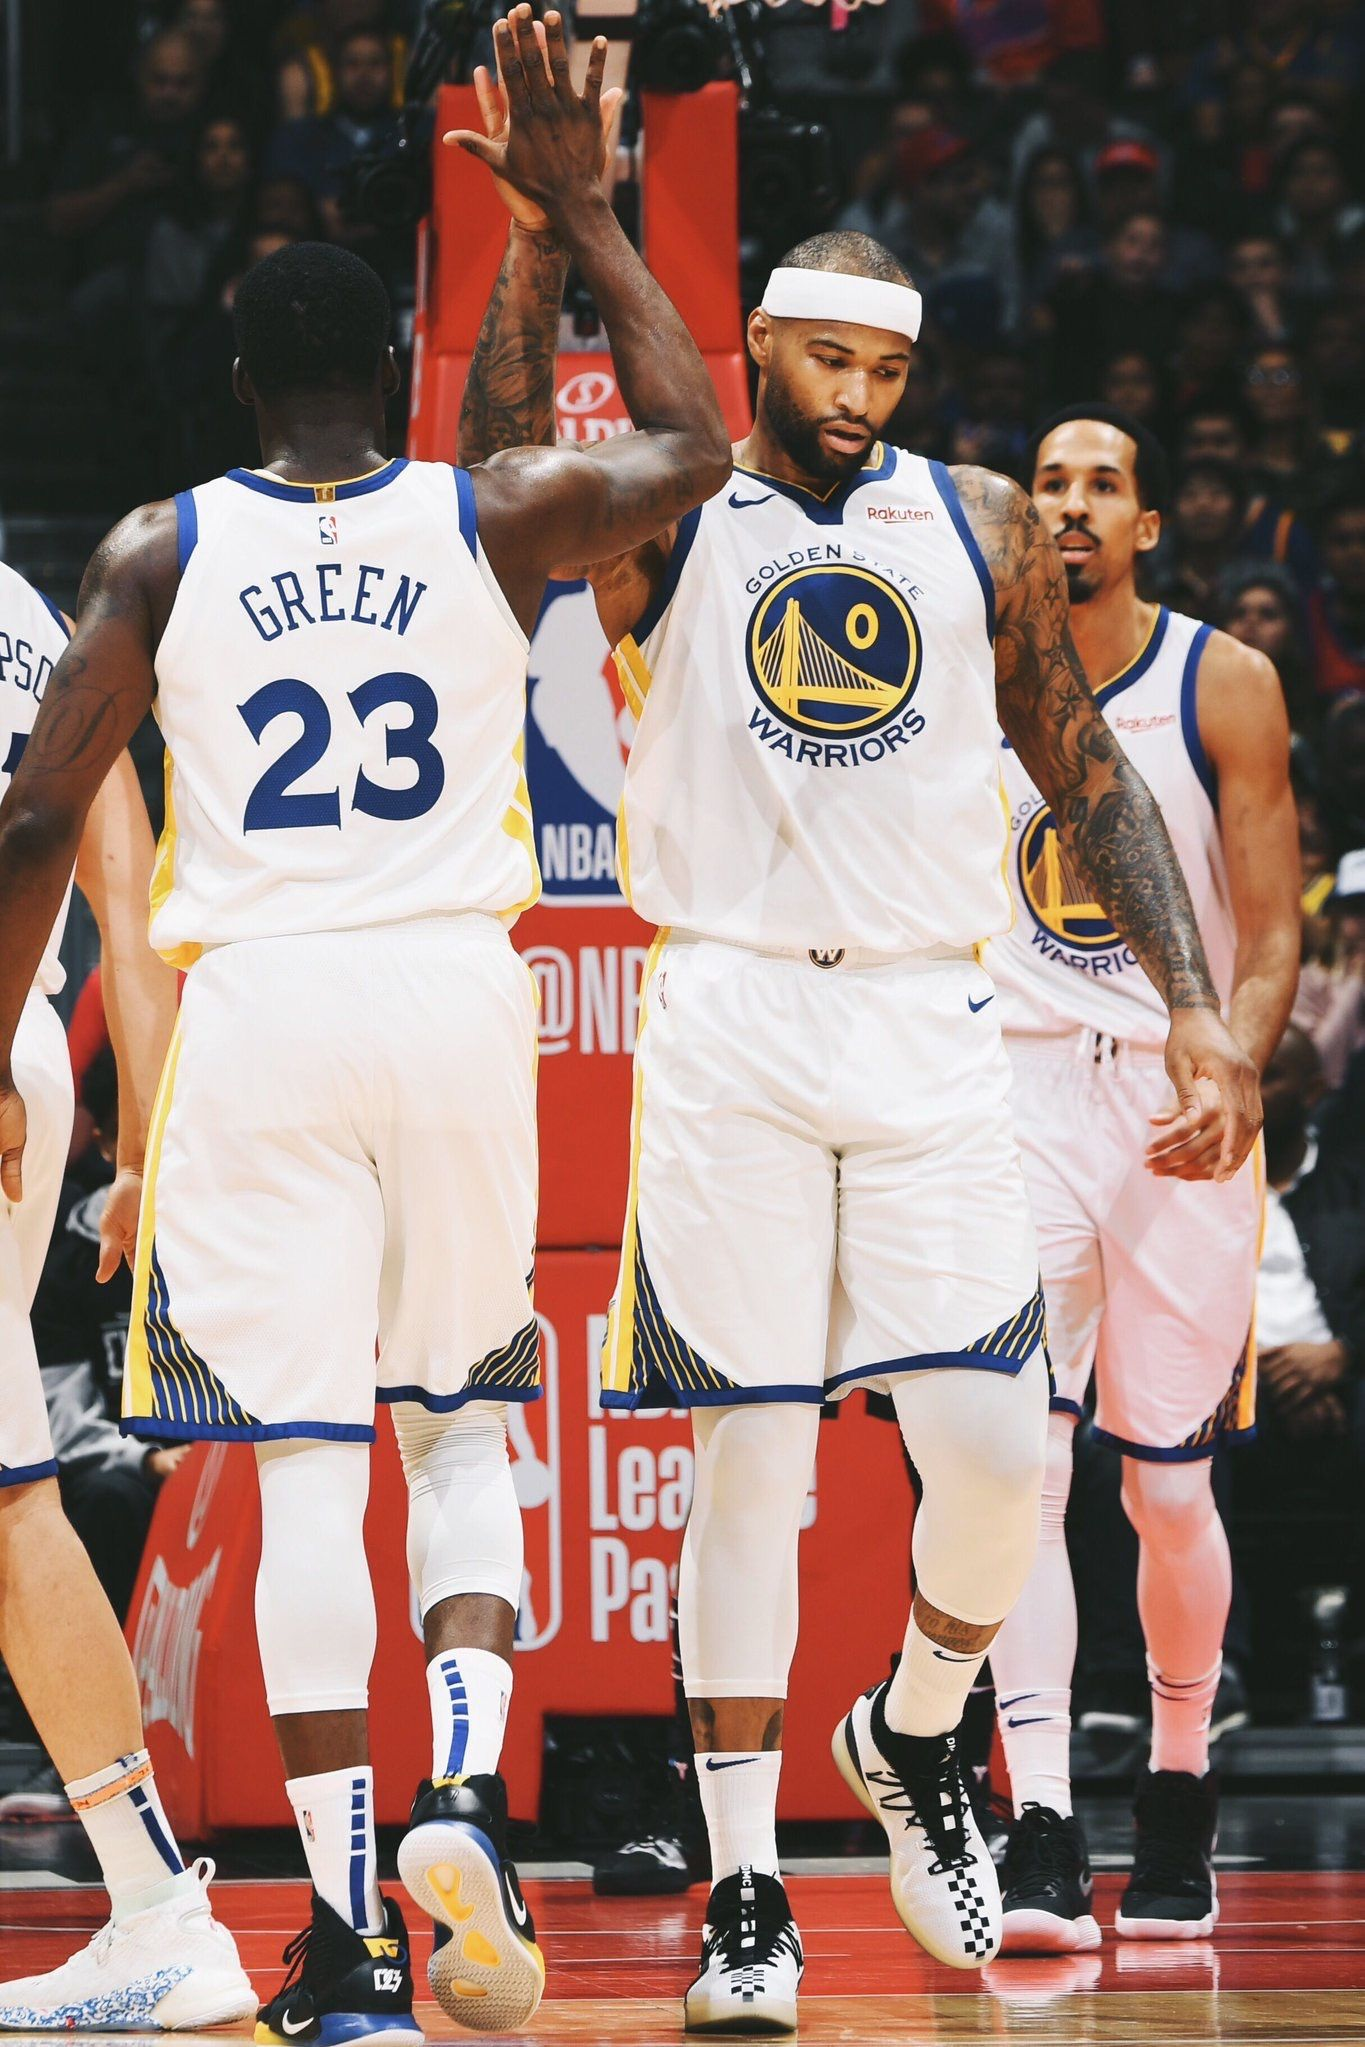 Los Angeles California 1 18 19 Demarcus Cousins Scored 14 Points In His Warriors Debut A 112 94 Victory Over T Golden State Warriors Warrior Golden State